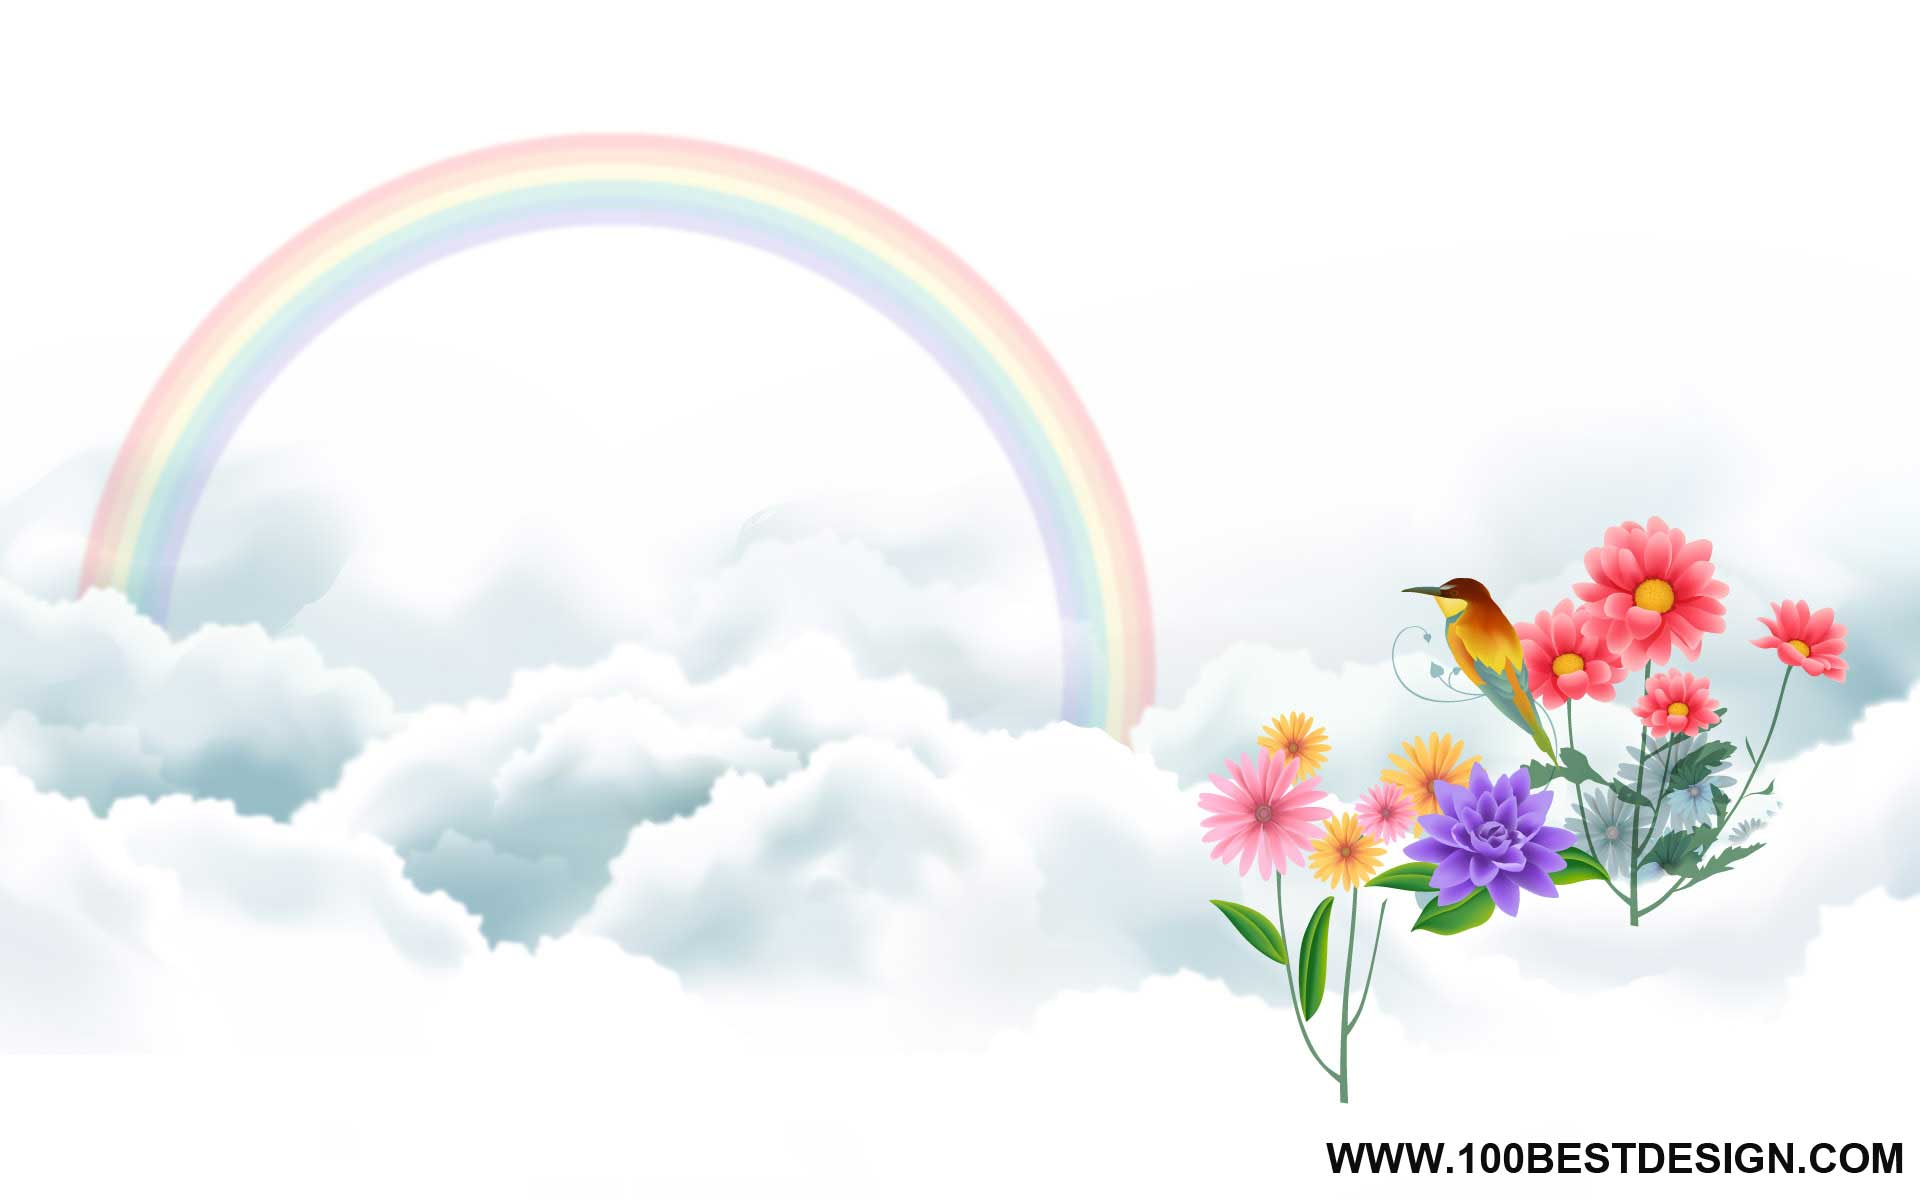 wallpaper and background bird and rainbow wide view 100 Best Design 1920x1200